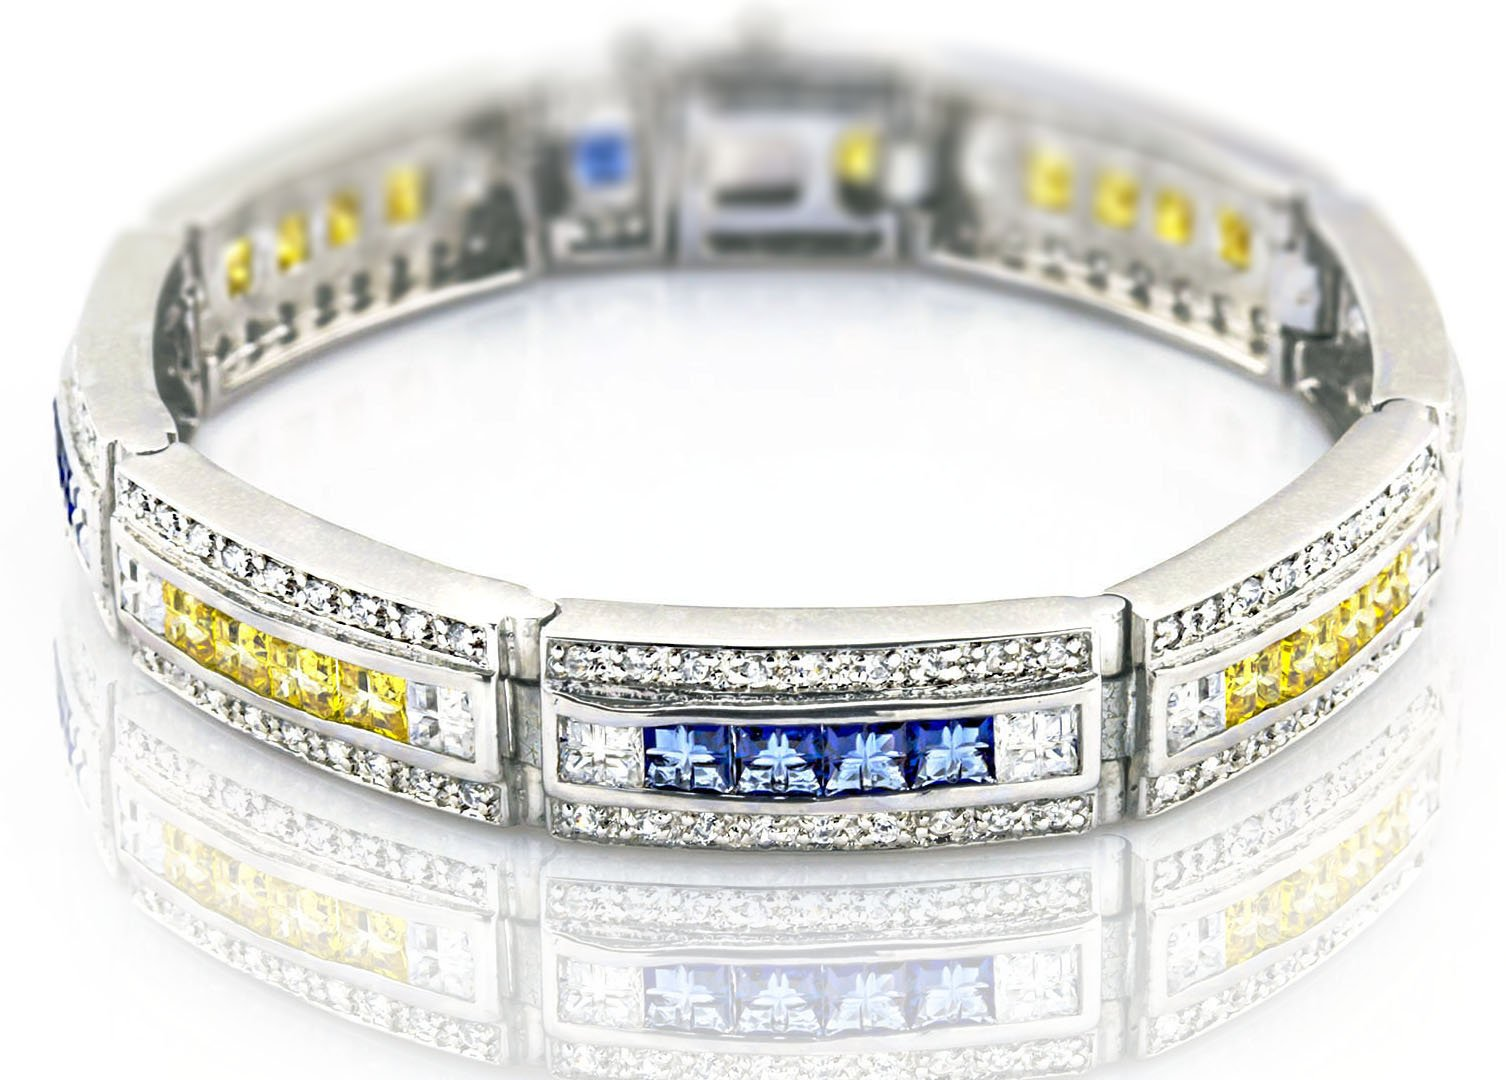 Men's Sterling Silver .925 Bracelet with Canary Yellow, Azure Blue and White Cubic Zirconia (CZ) Stones, Box Lock, Platinum Plated. 8'' or 9'' By Sterling Manufacturers by Sterling Manufacturers (Image #1)